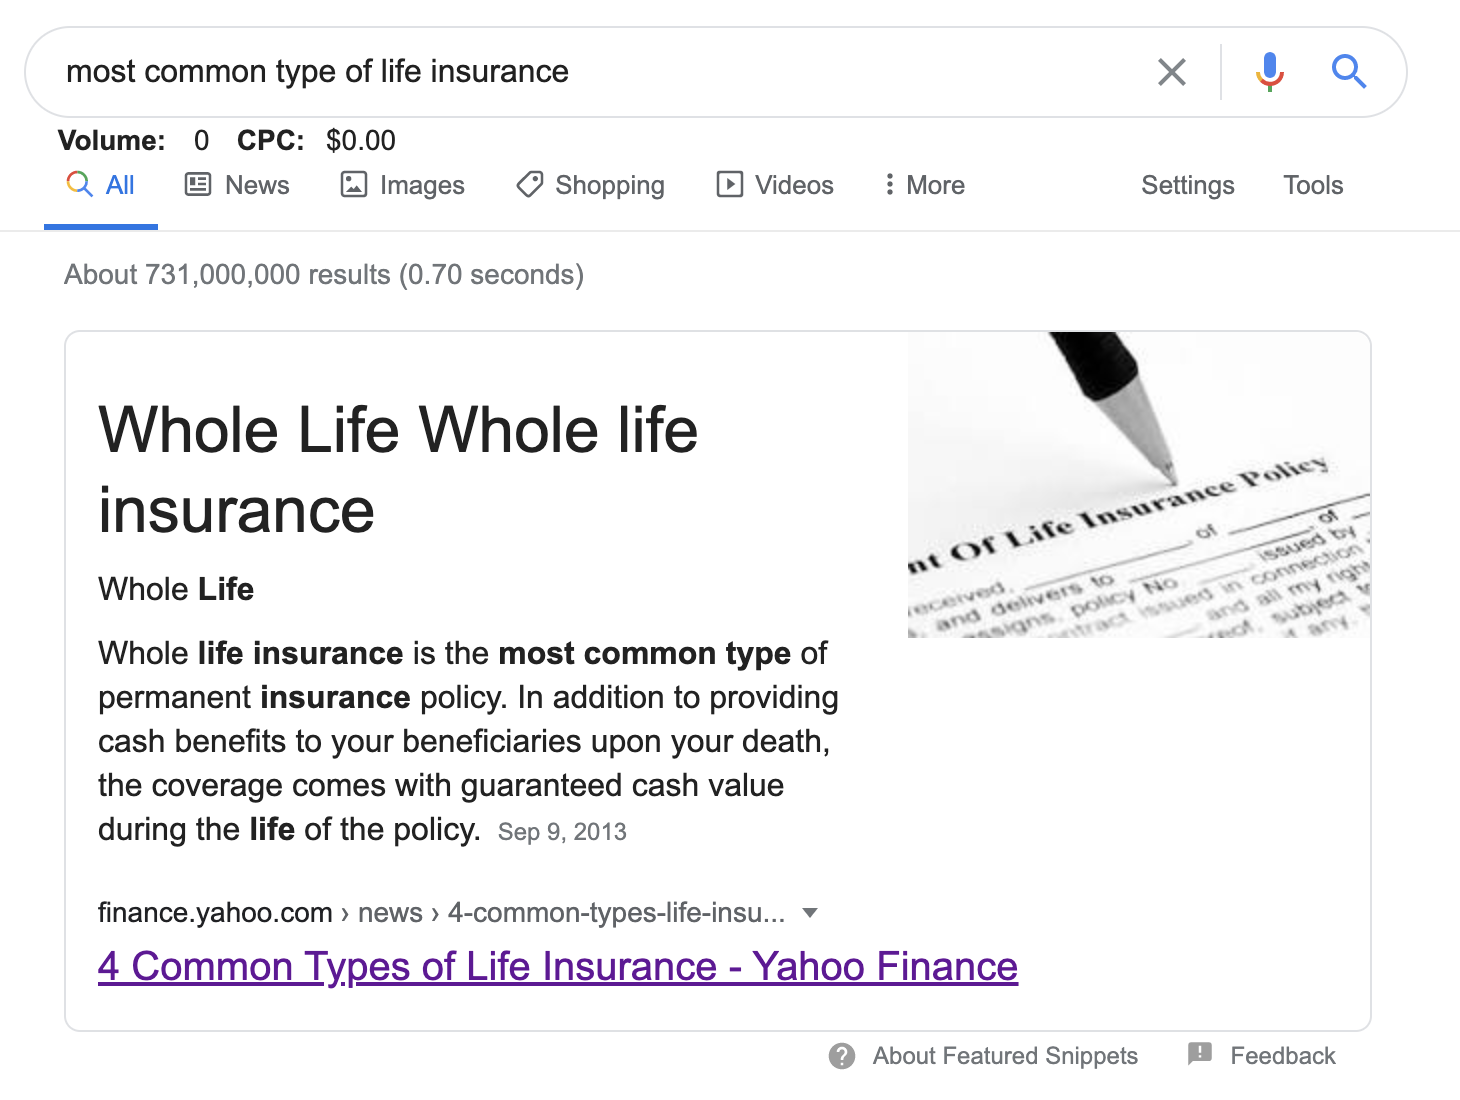 The most common life insurance type